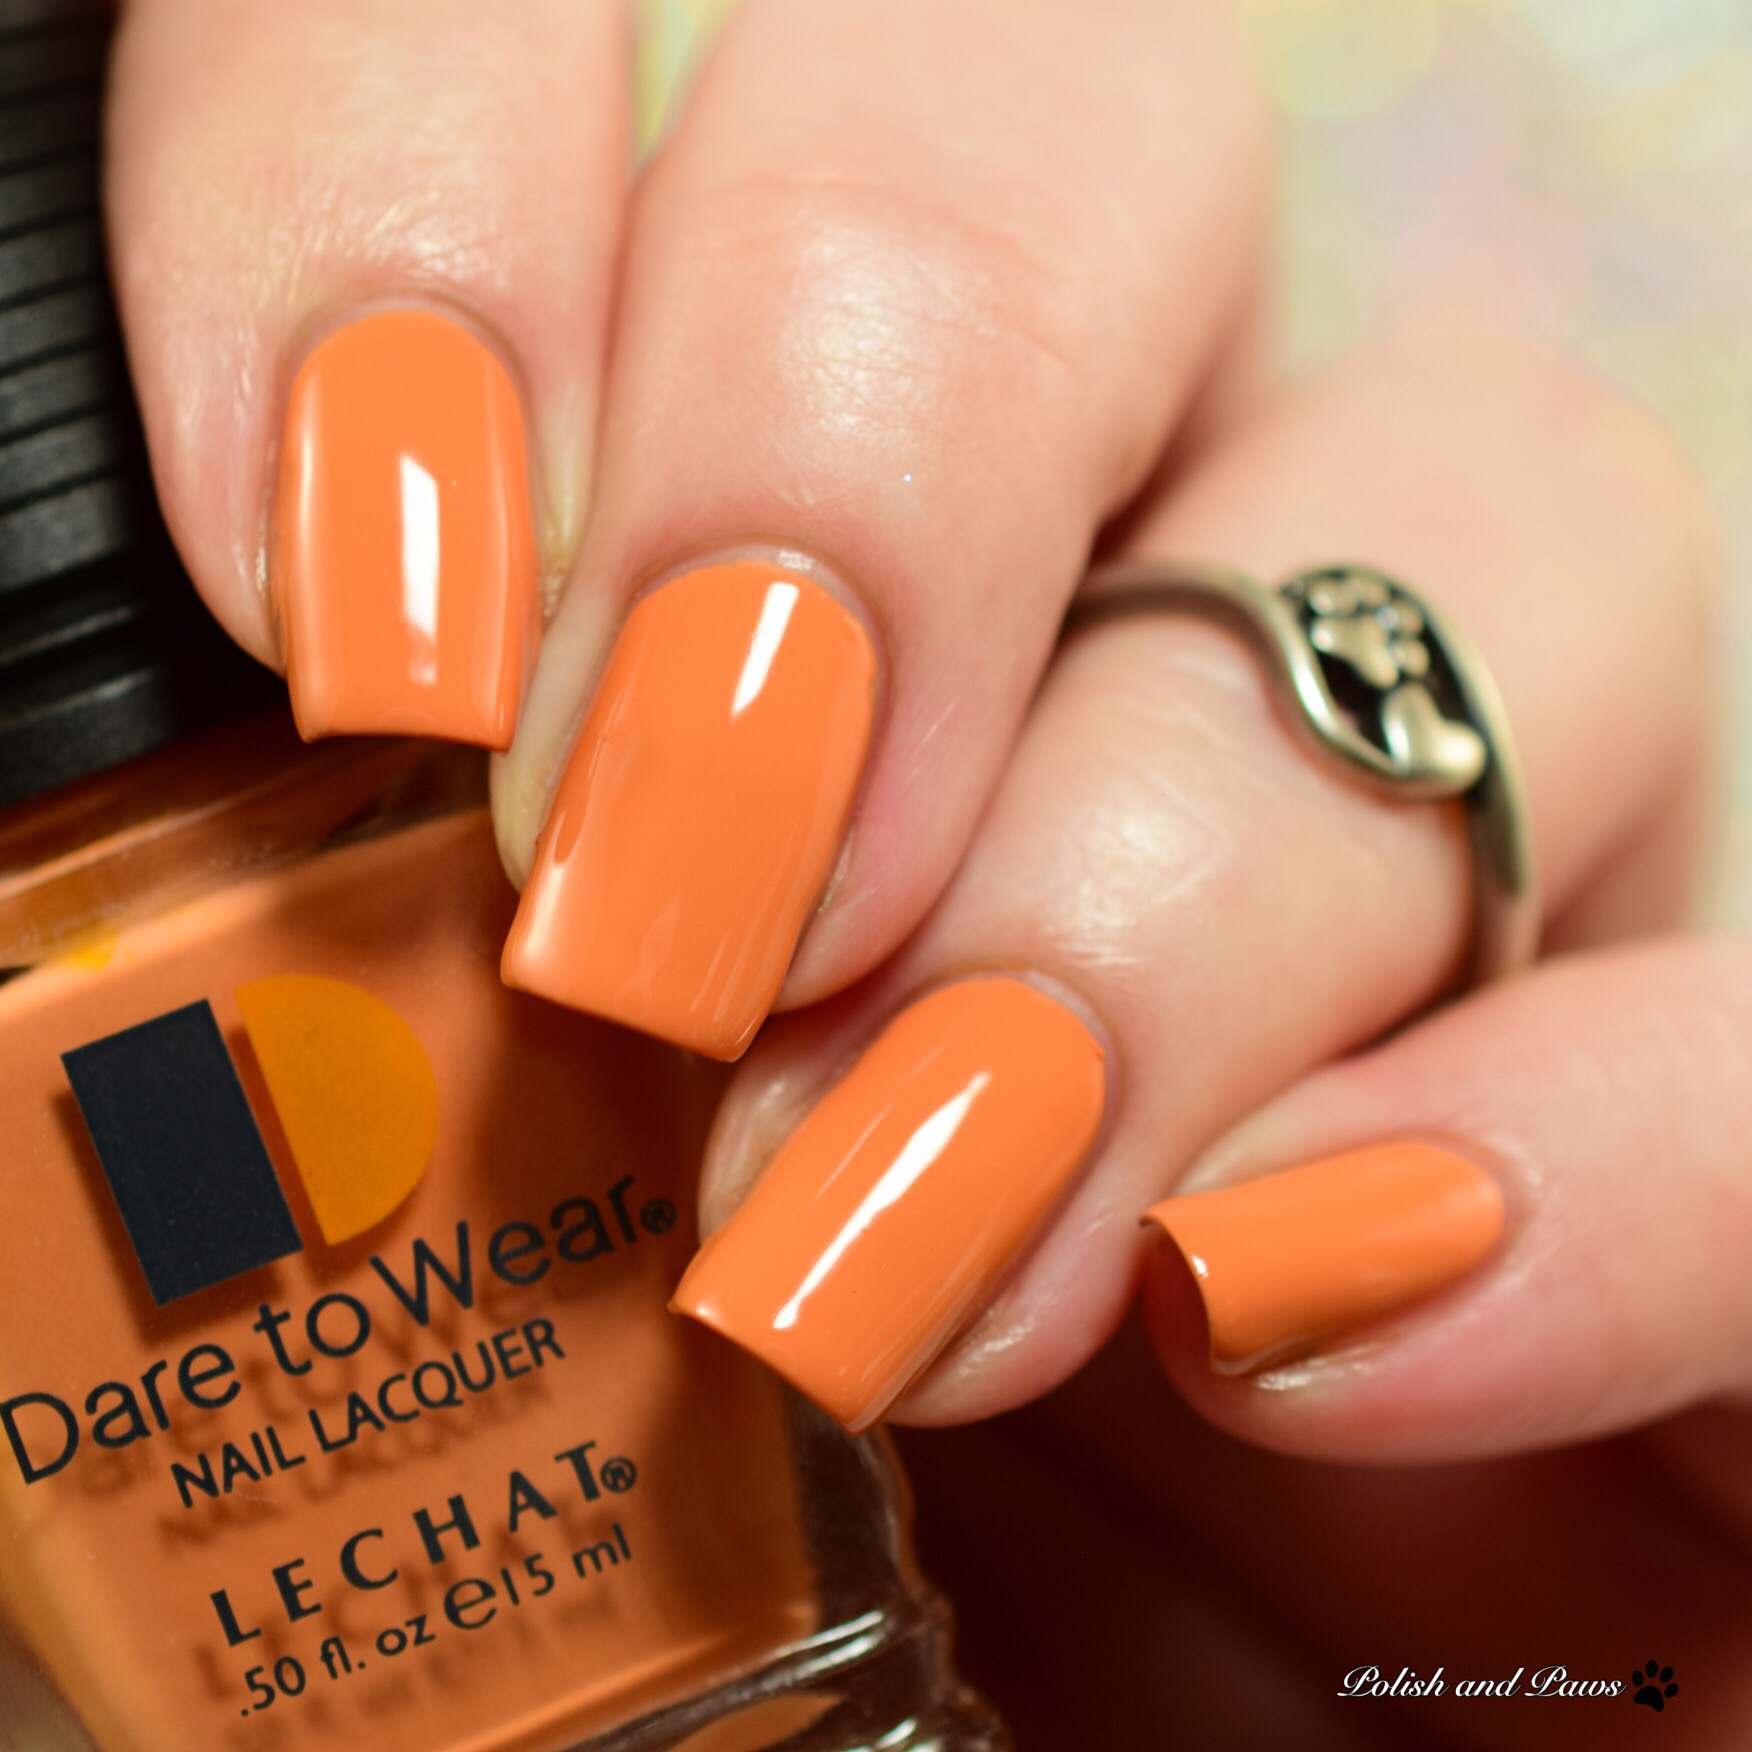 Le Chat Dare to Wear Modern Muse Fall 2017 Collection | Polish and Paws